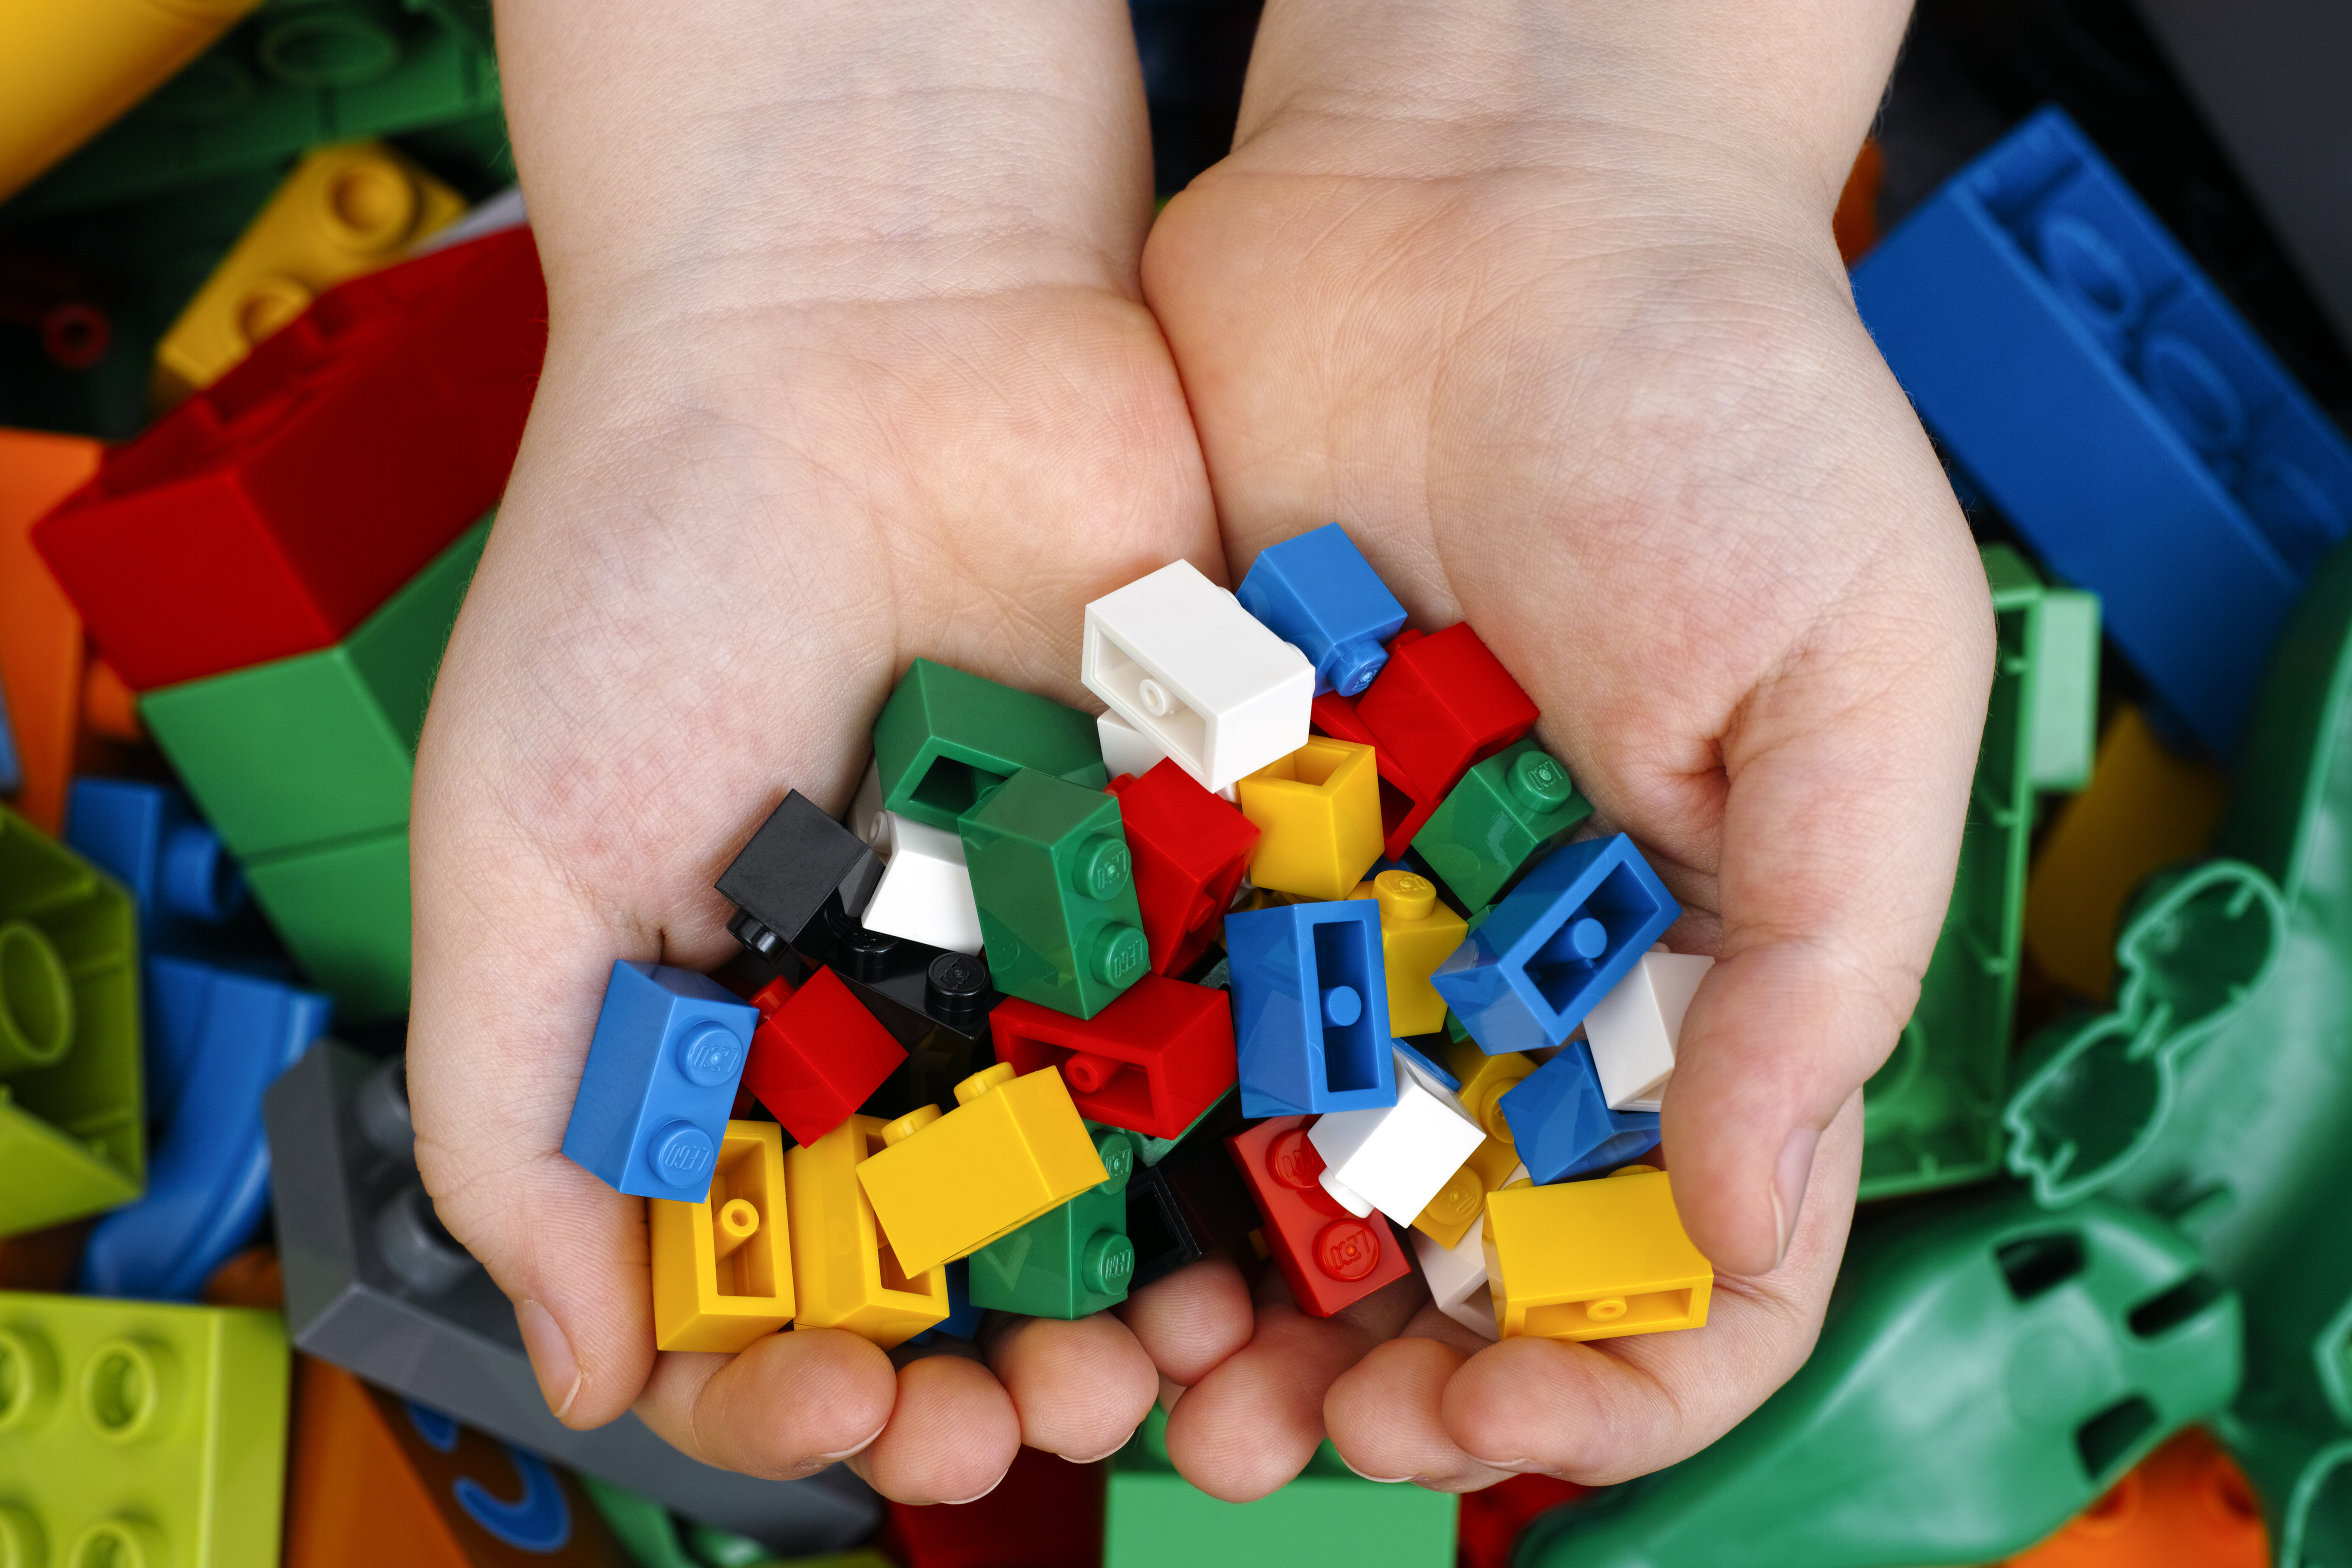 Legos in a child's hands.